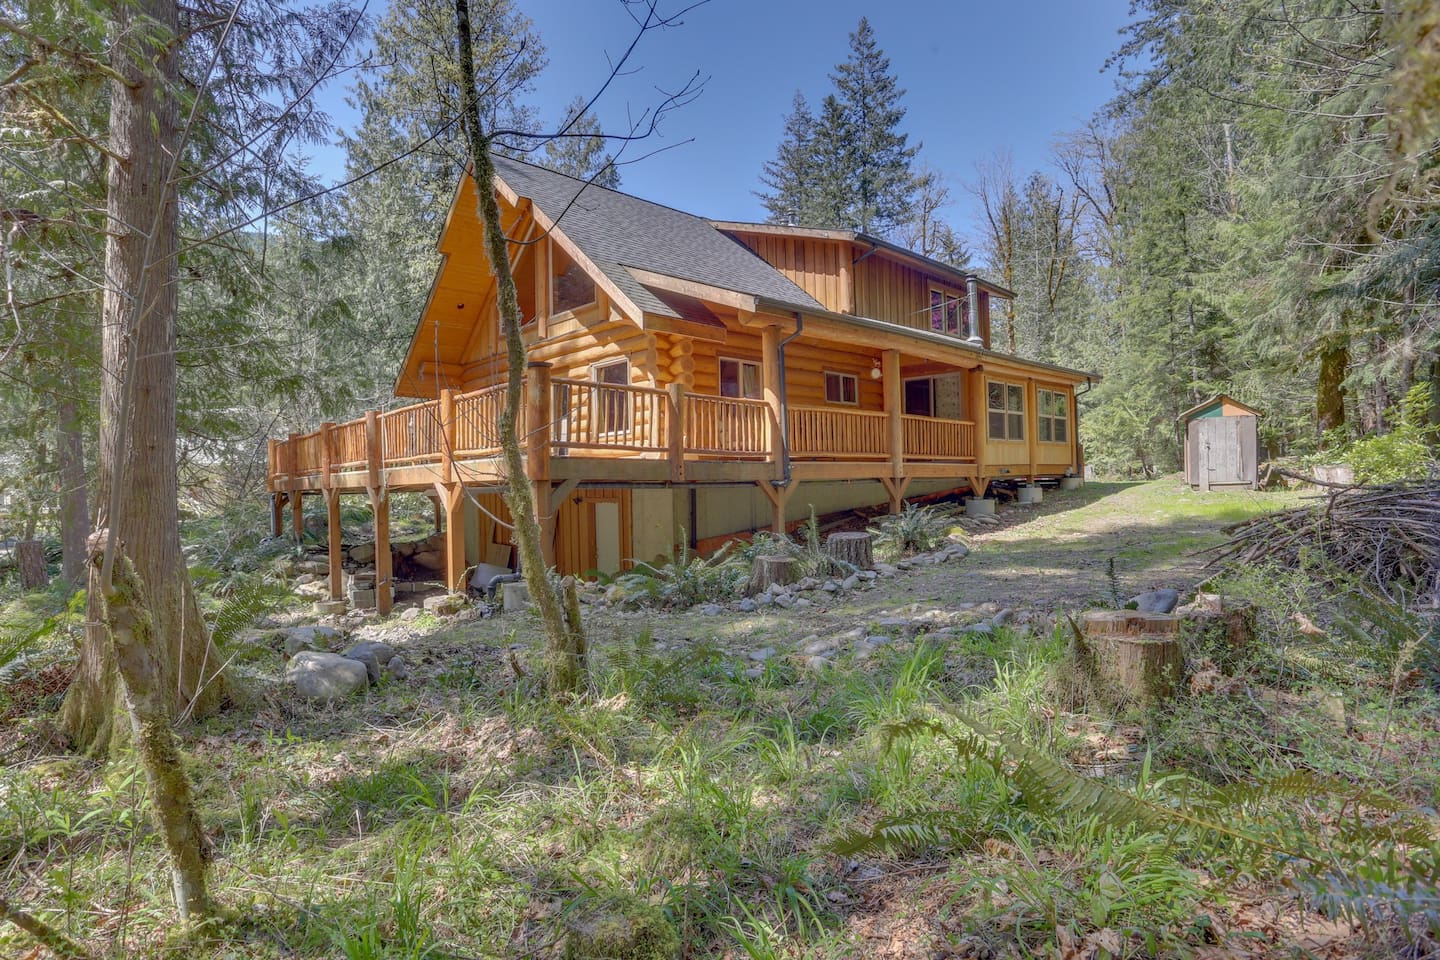 The best Airbnb in Welches, Oregon